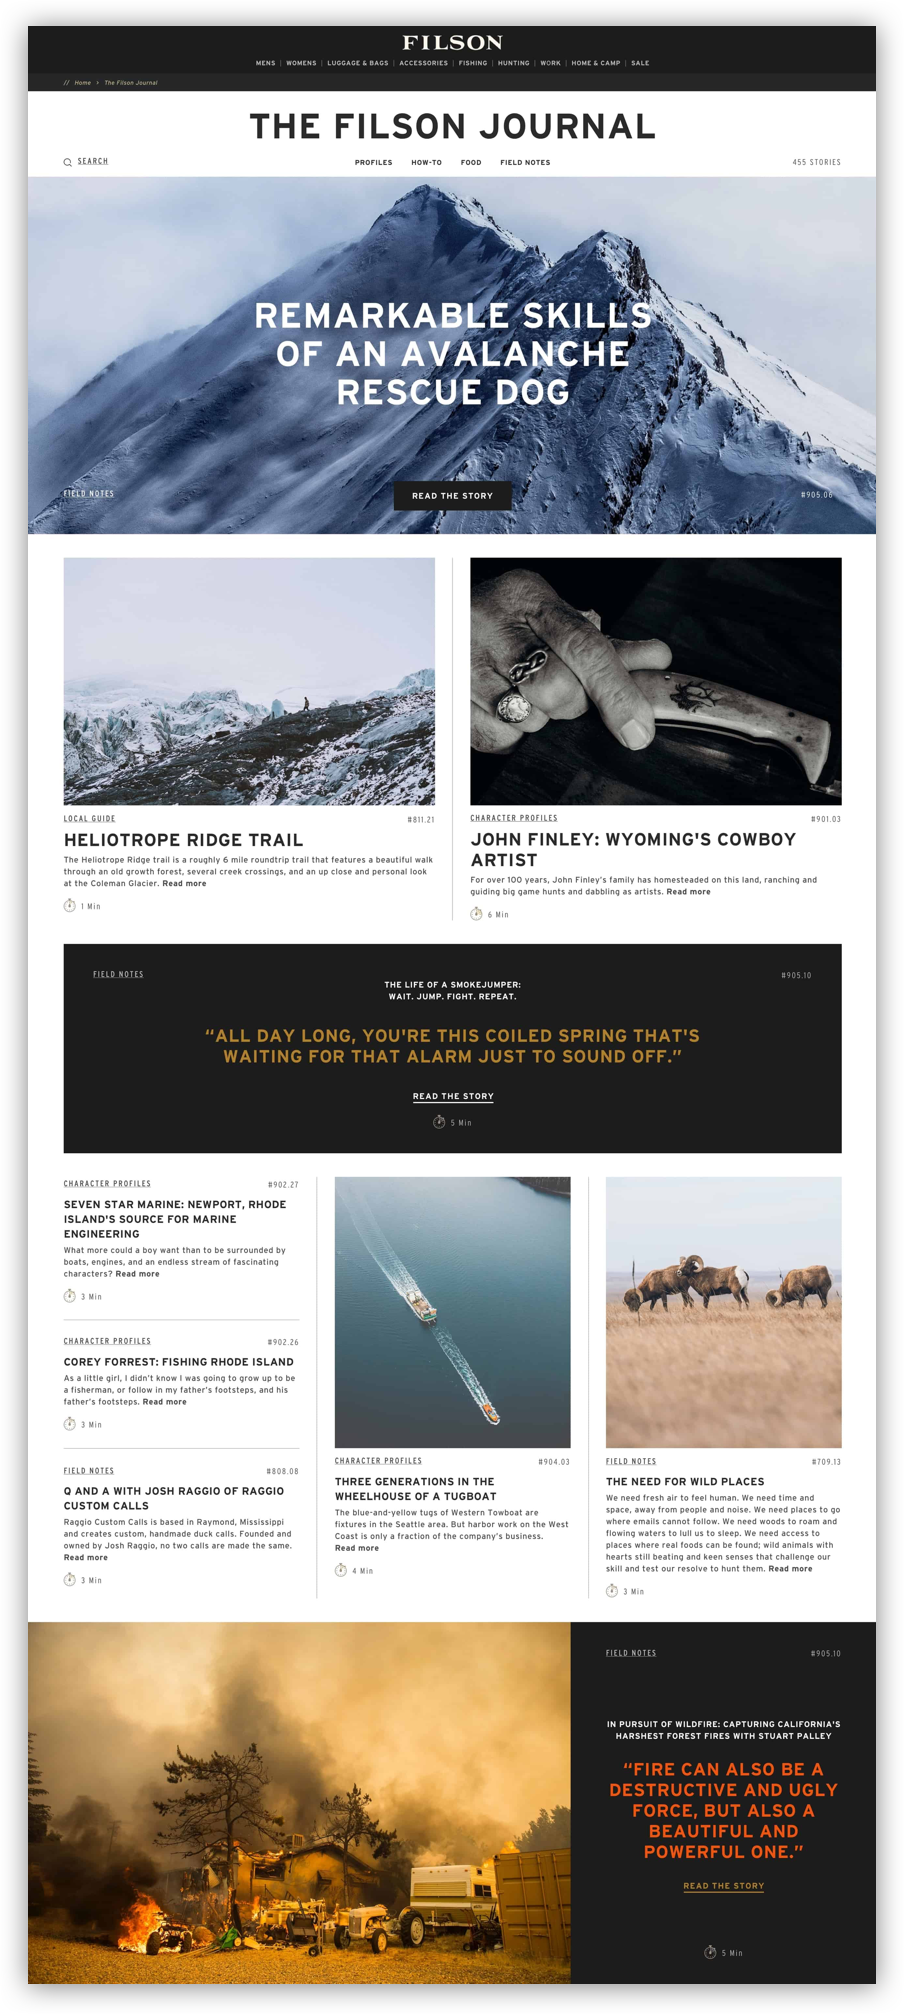 The Filson Journal Homepage